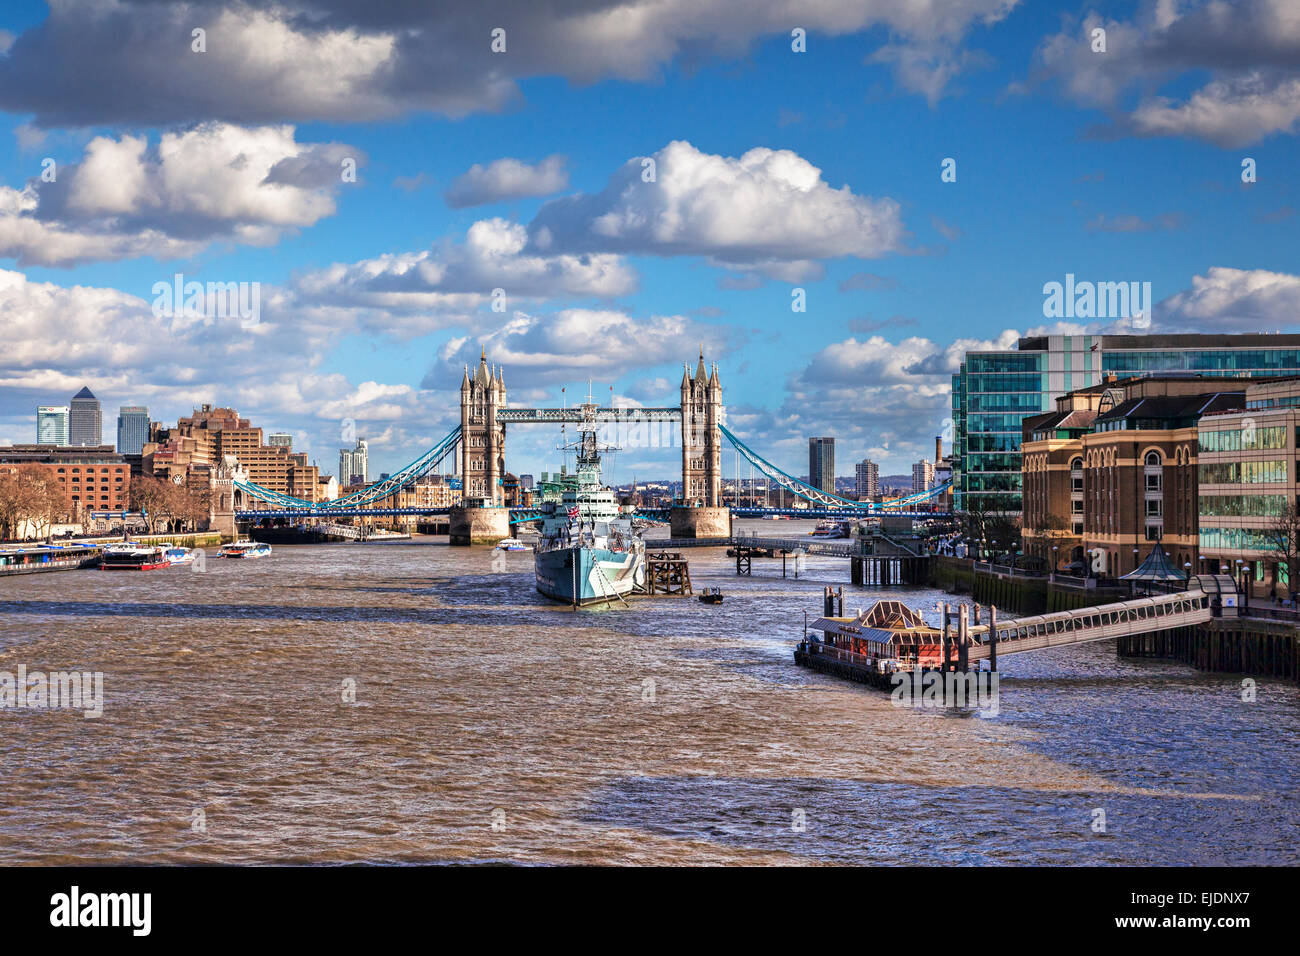 HMS Belfast on the River Thames, and Tower Bridge, London. - Stock Image